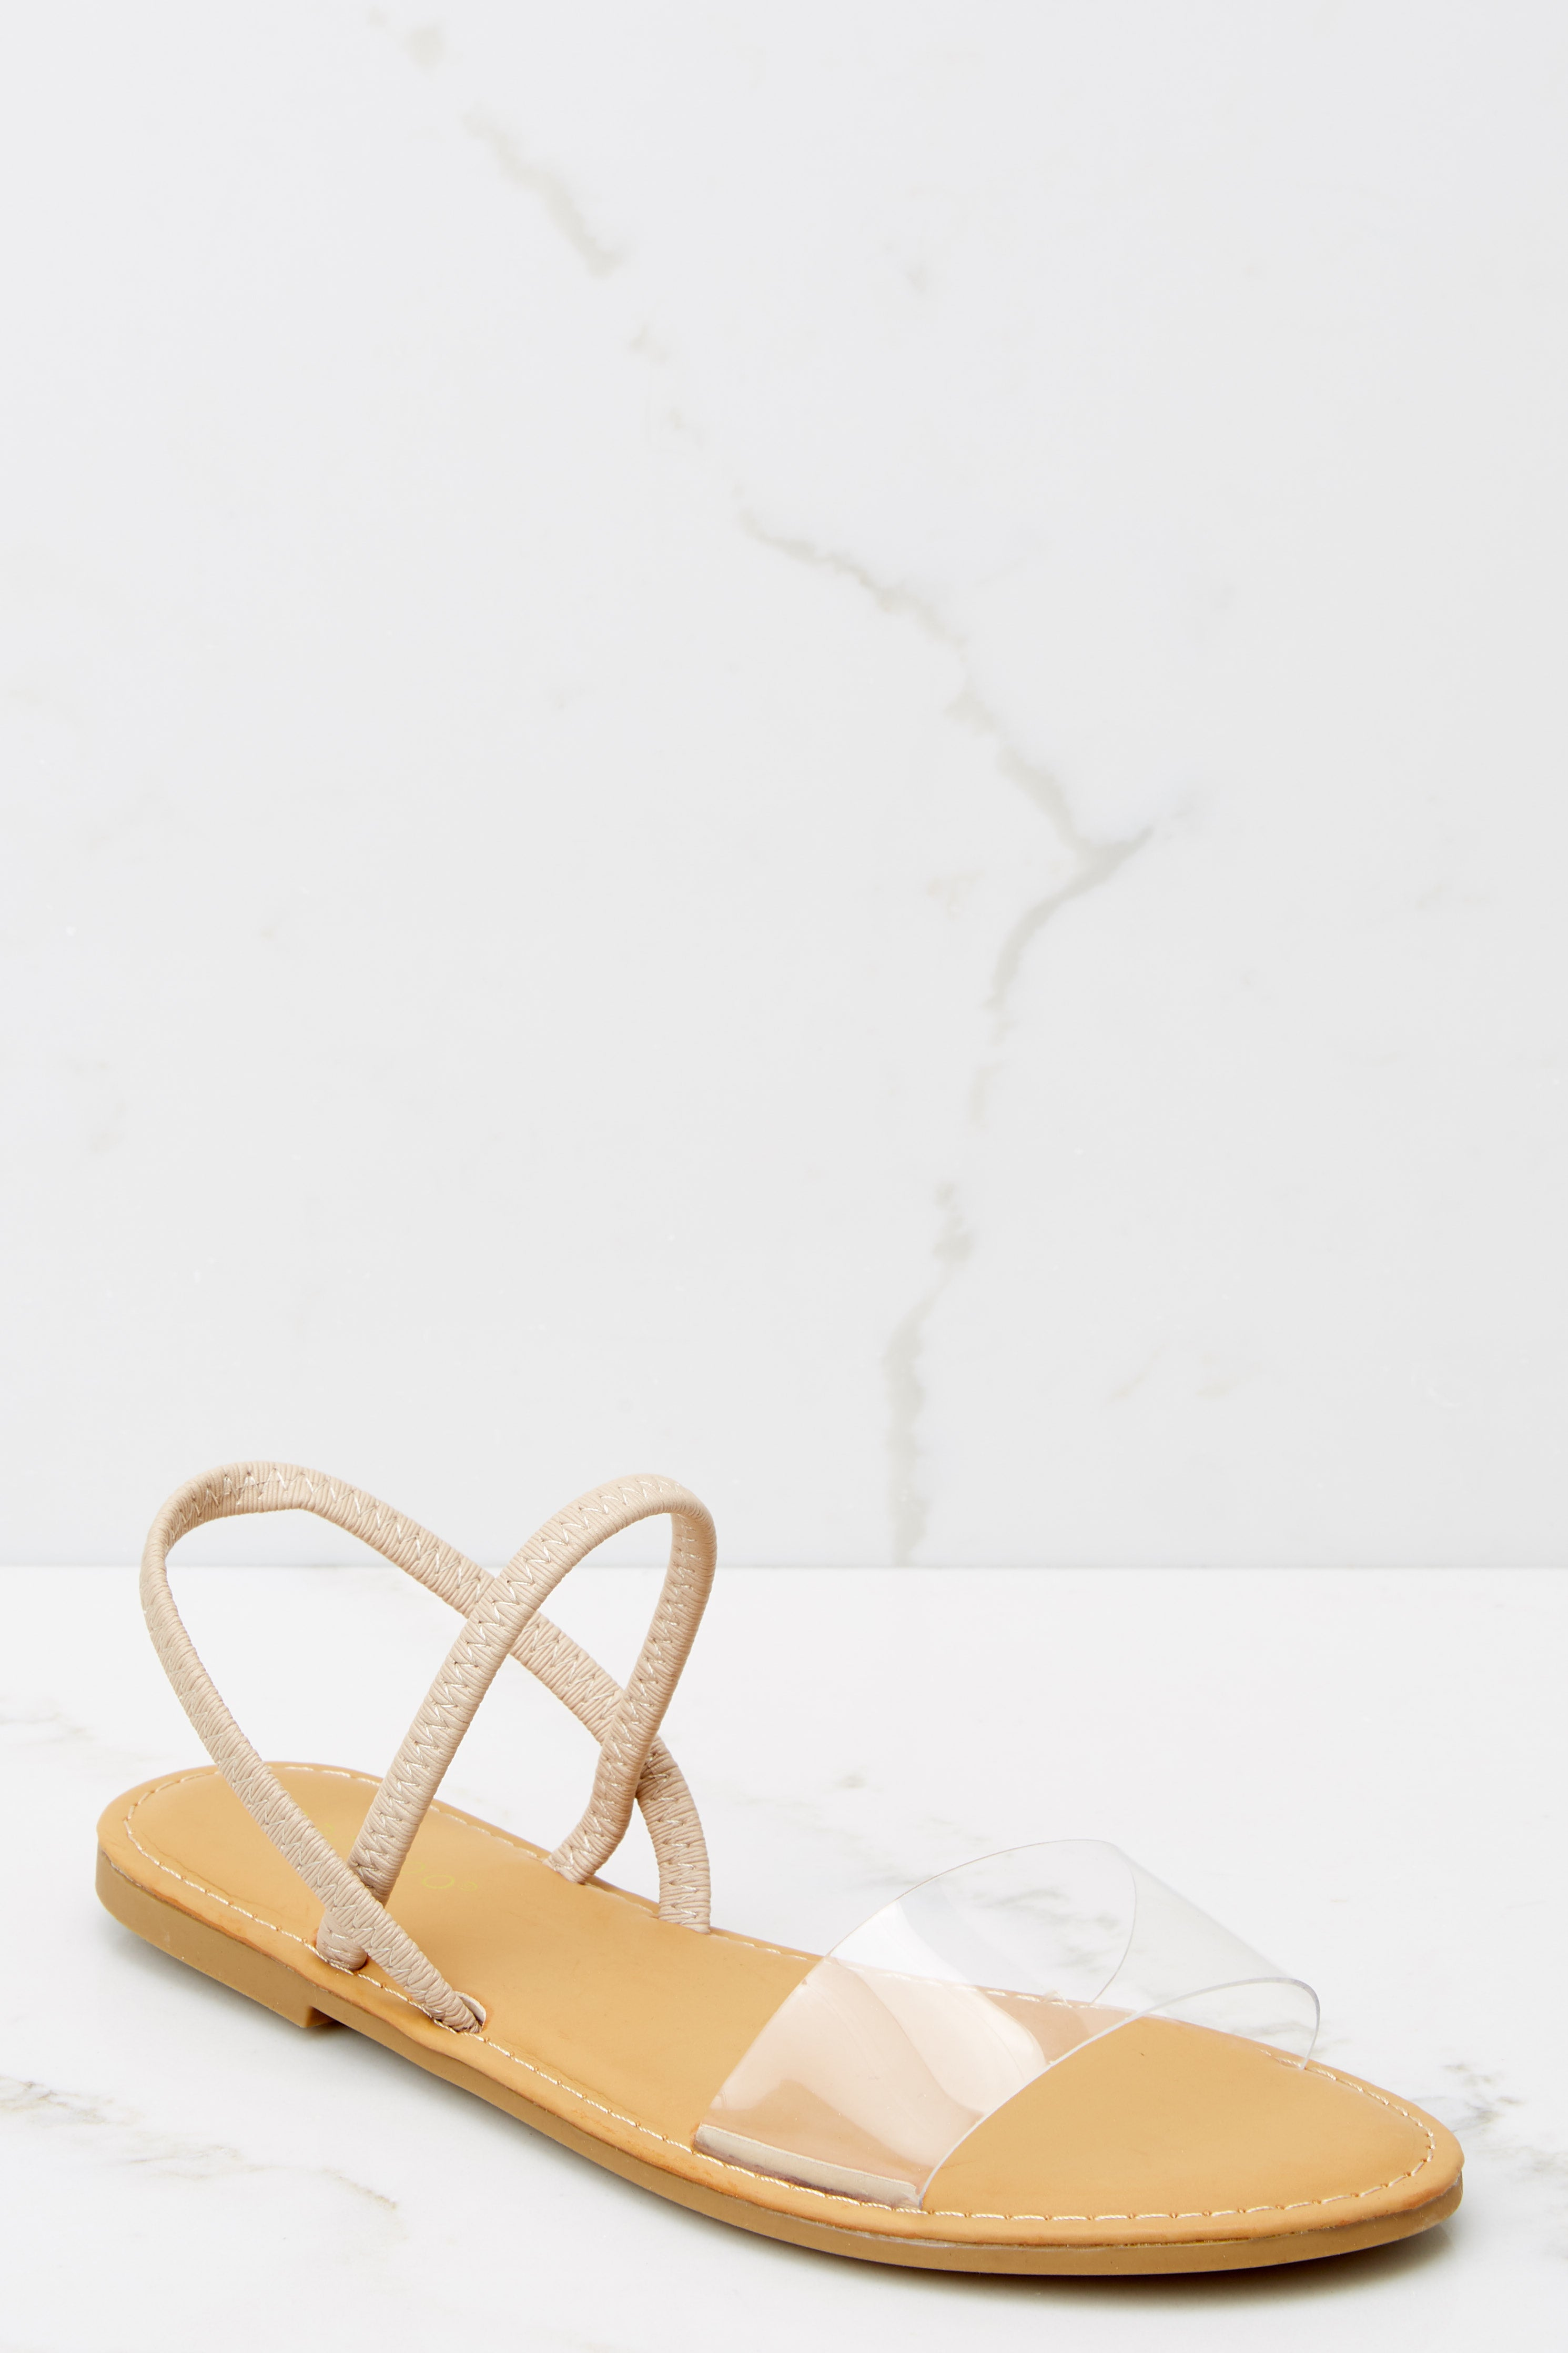 3 One Step Closer Nude Sandals at reddress.com